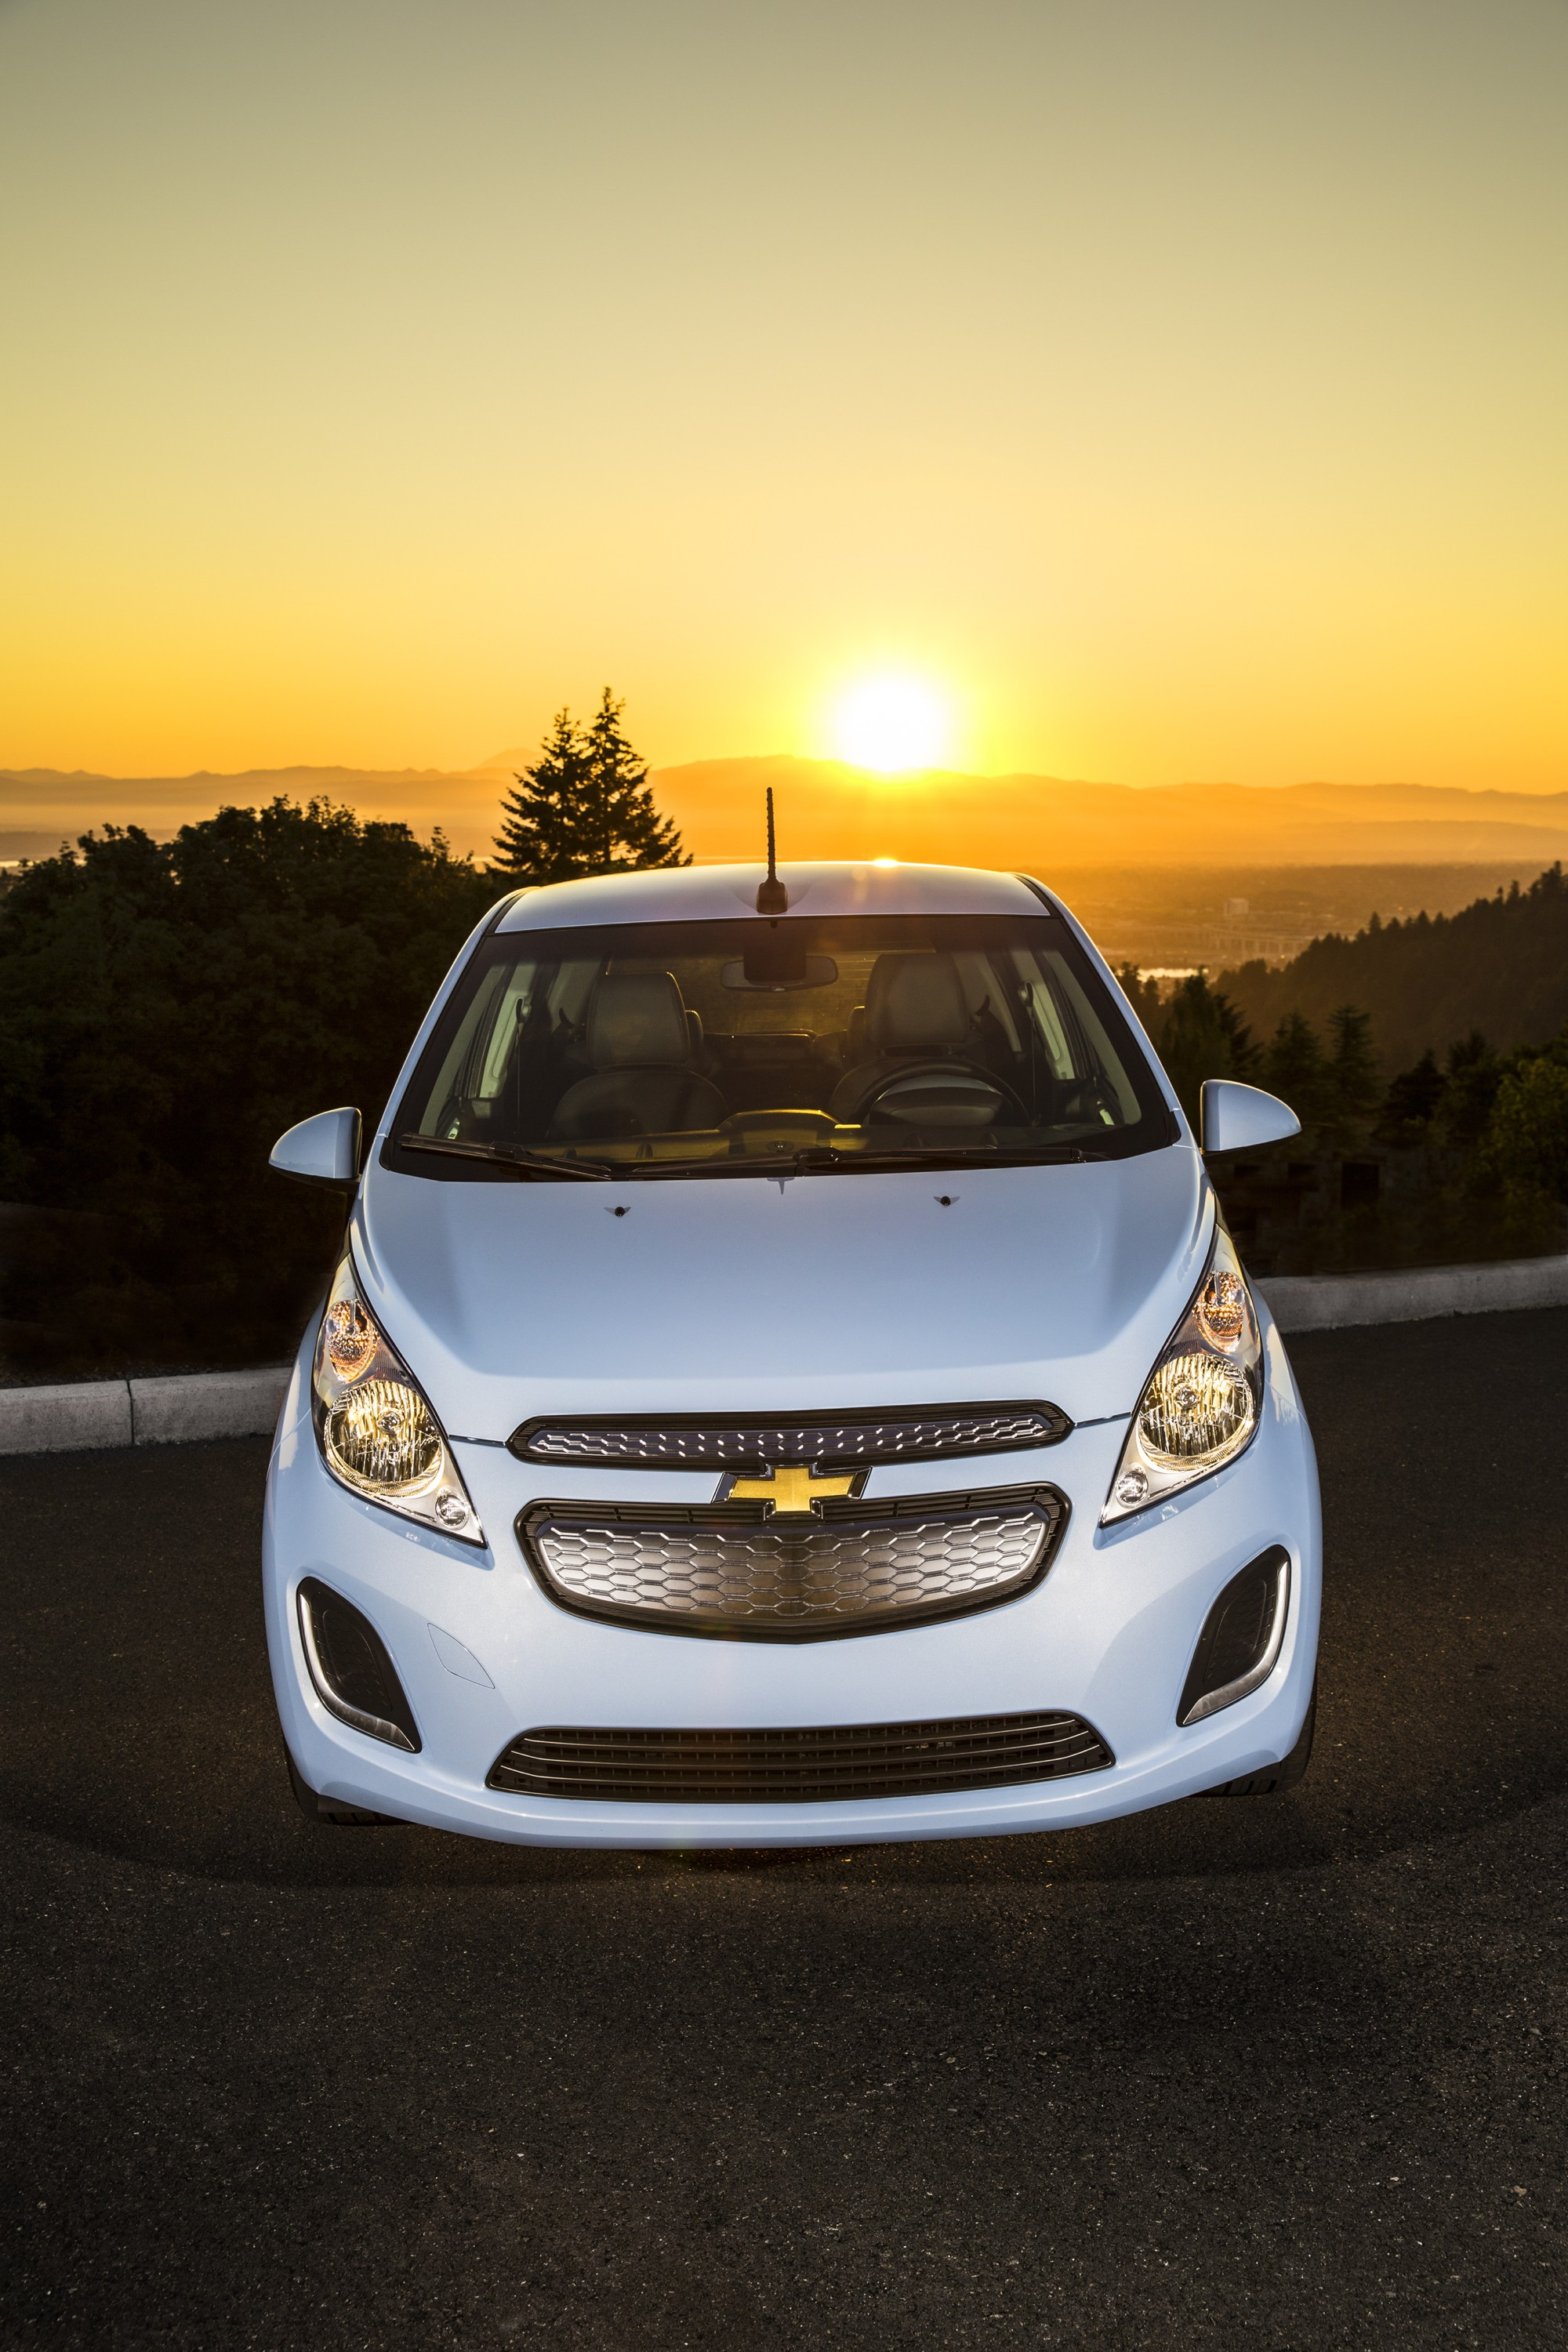 Electric Vehicle Tax Credit >> 2015 Chevrolet Spark EV Coming to Maryland [Video] - autoevolution